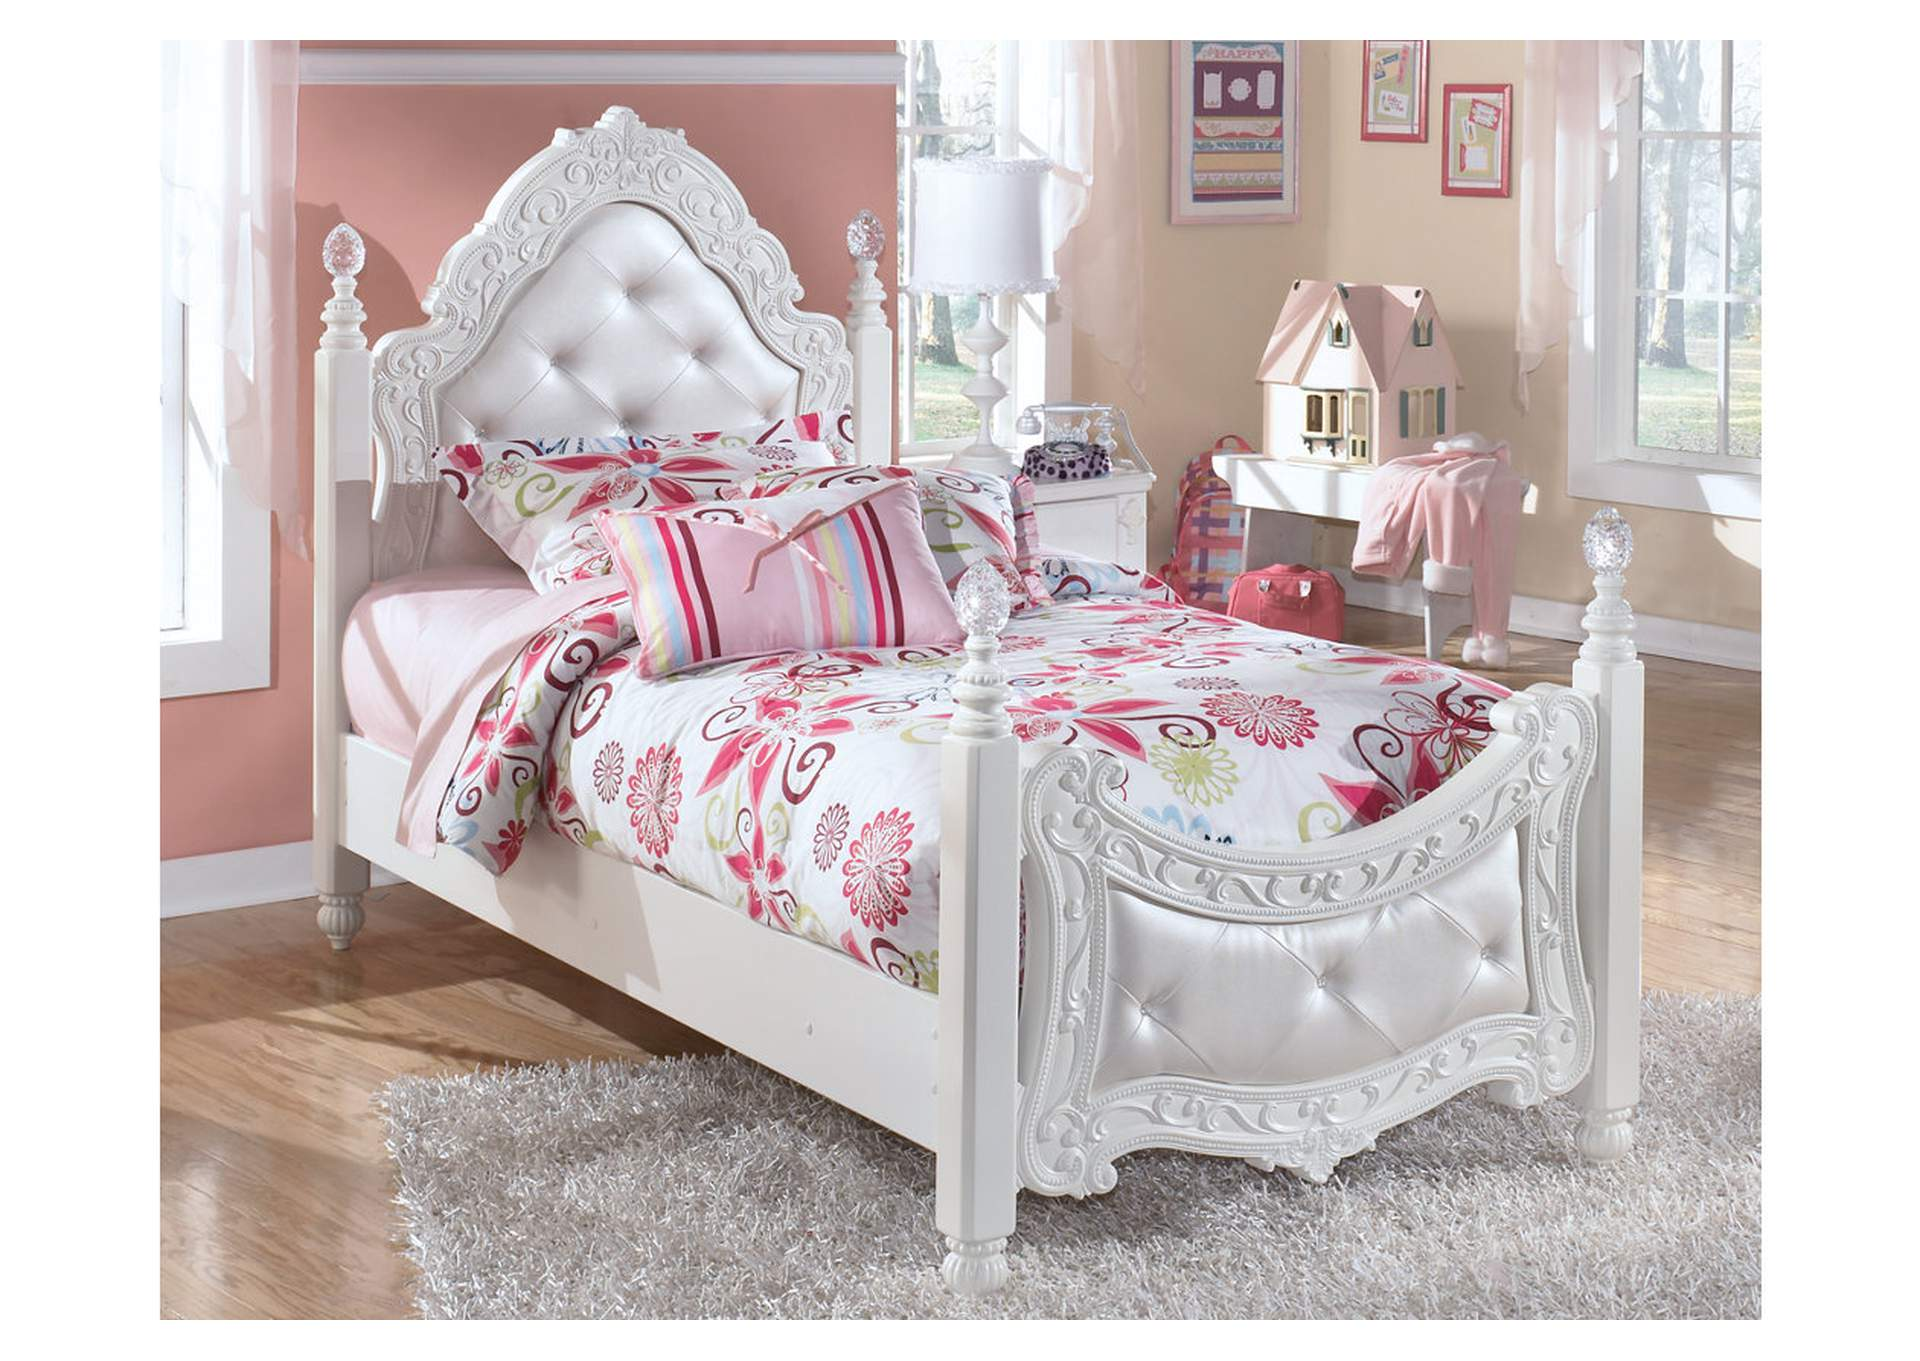 Exquisite Full Poster Bed,Signature Design By Ashley